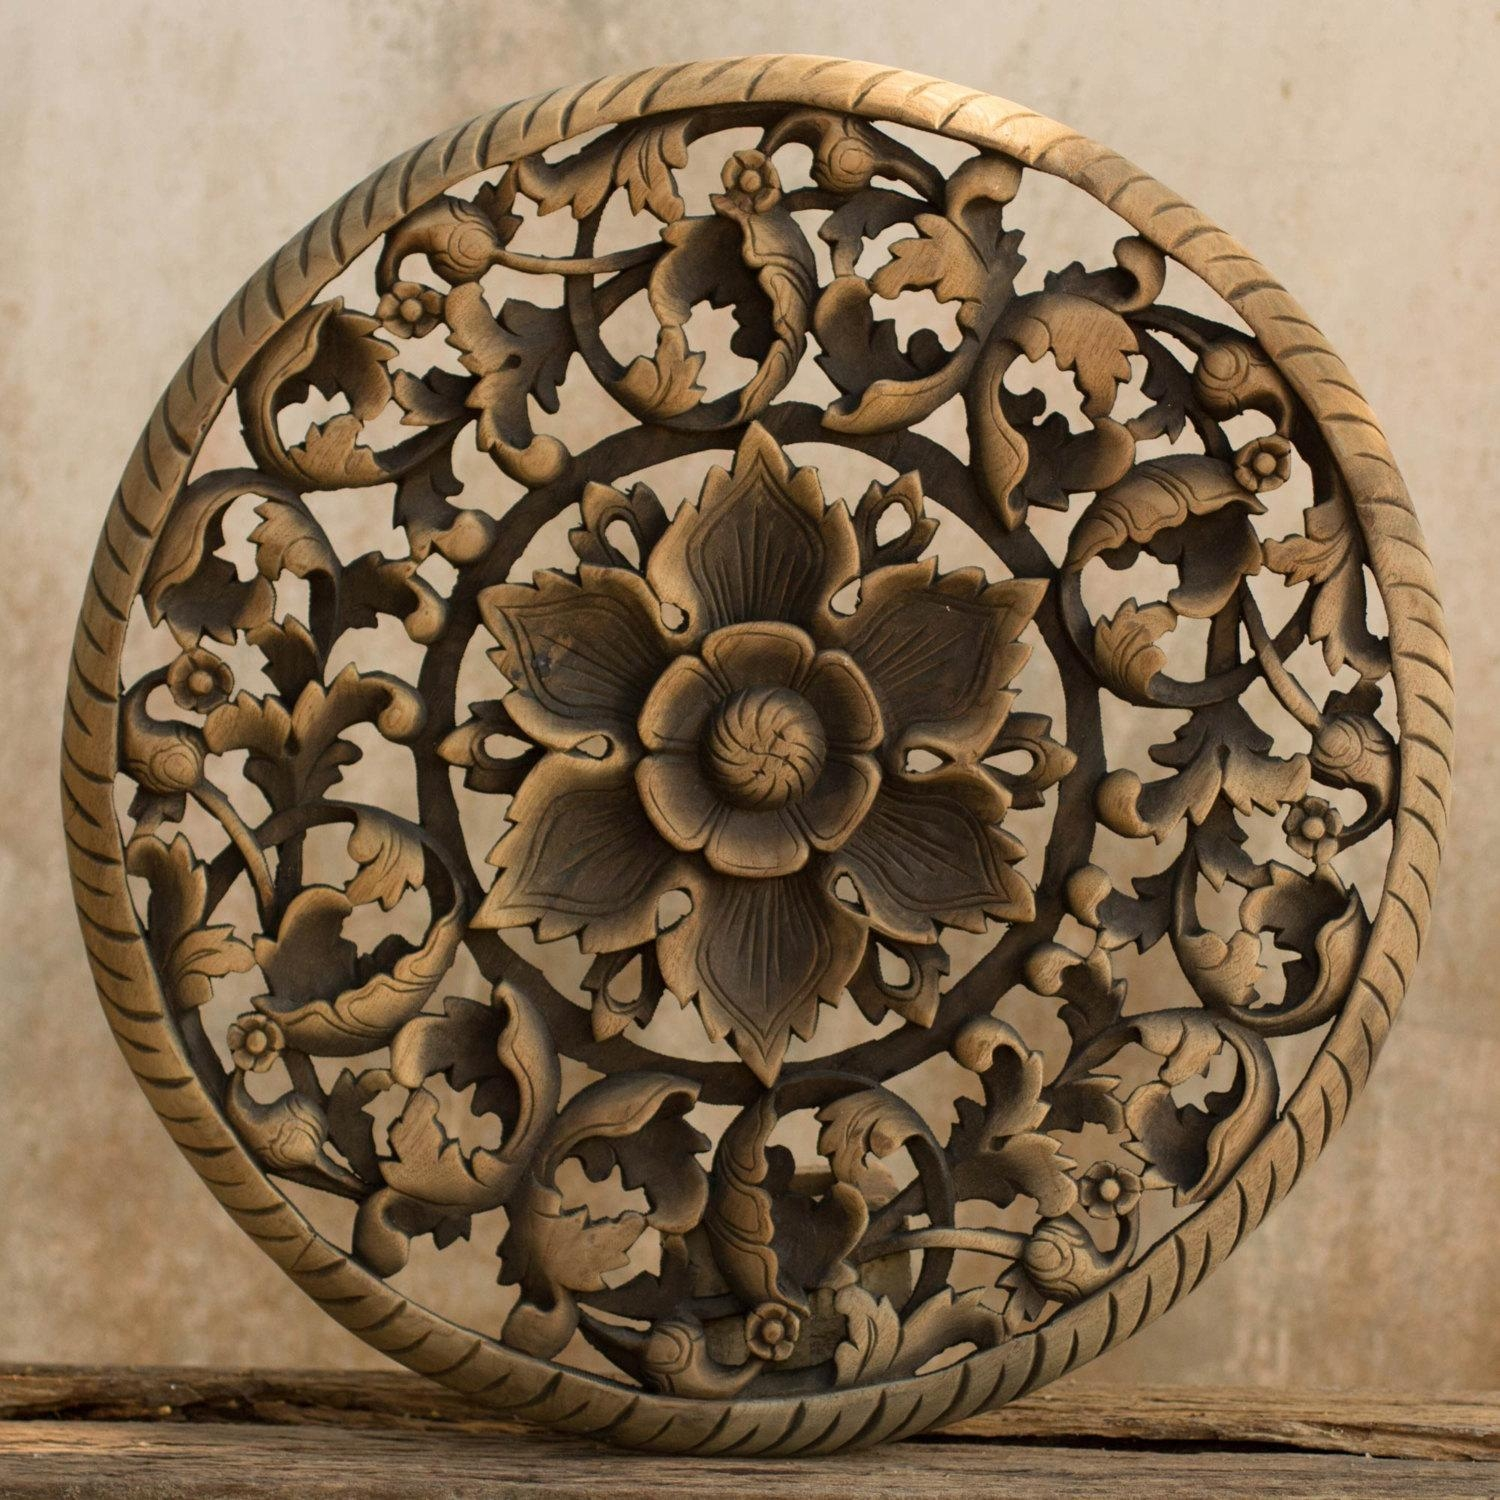 Tree Dimensional Floral Wooden Wall Hanging – Siam Sawadee In Wood Carved Wall Art Panels (Image 15 of 20)